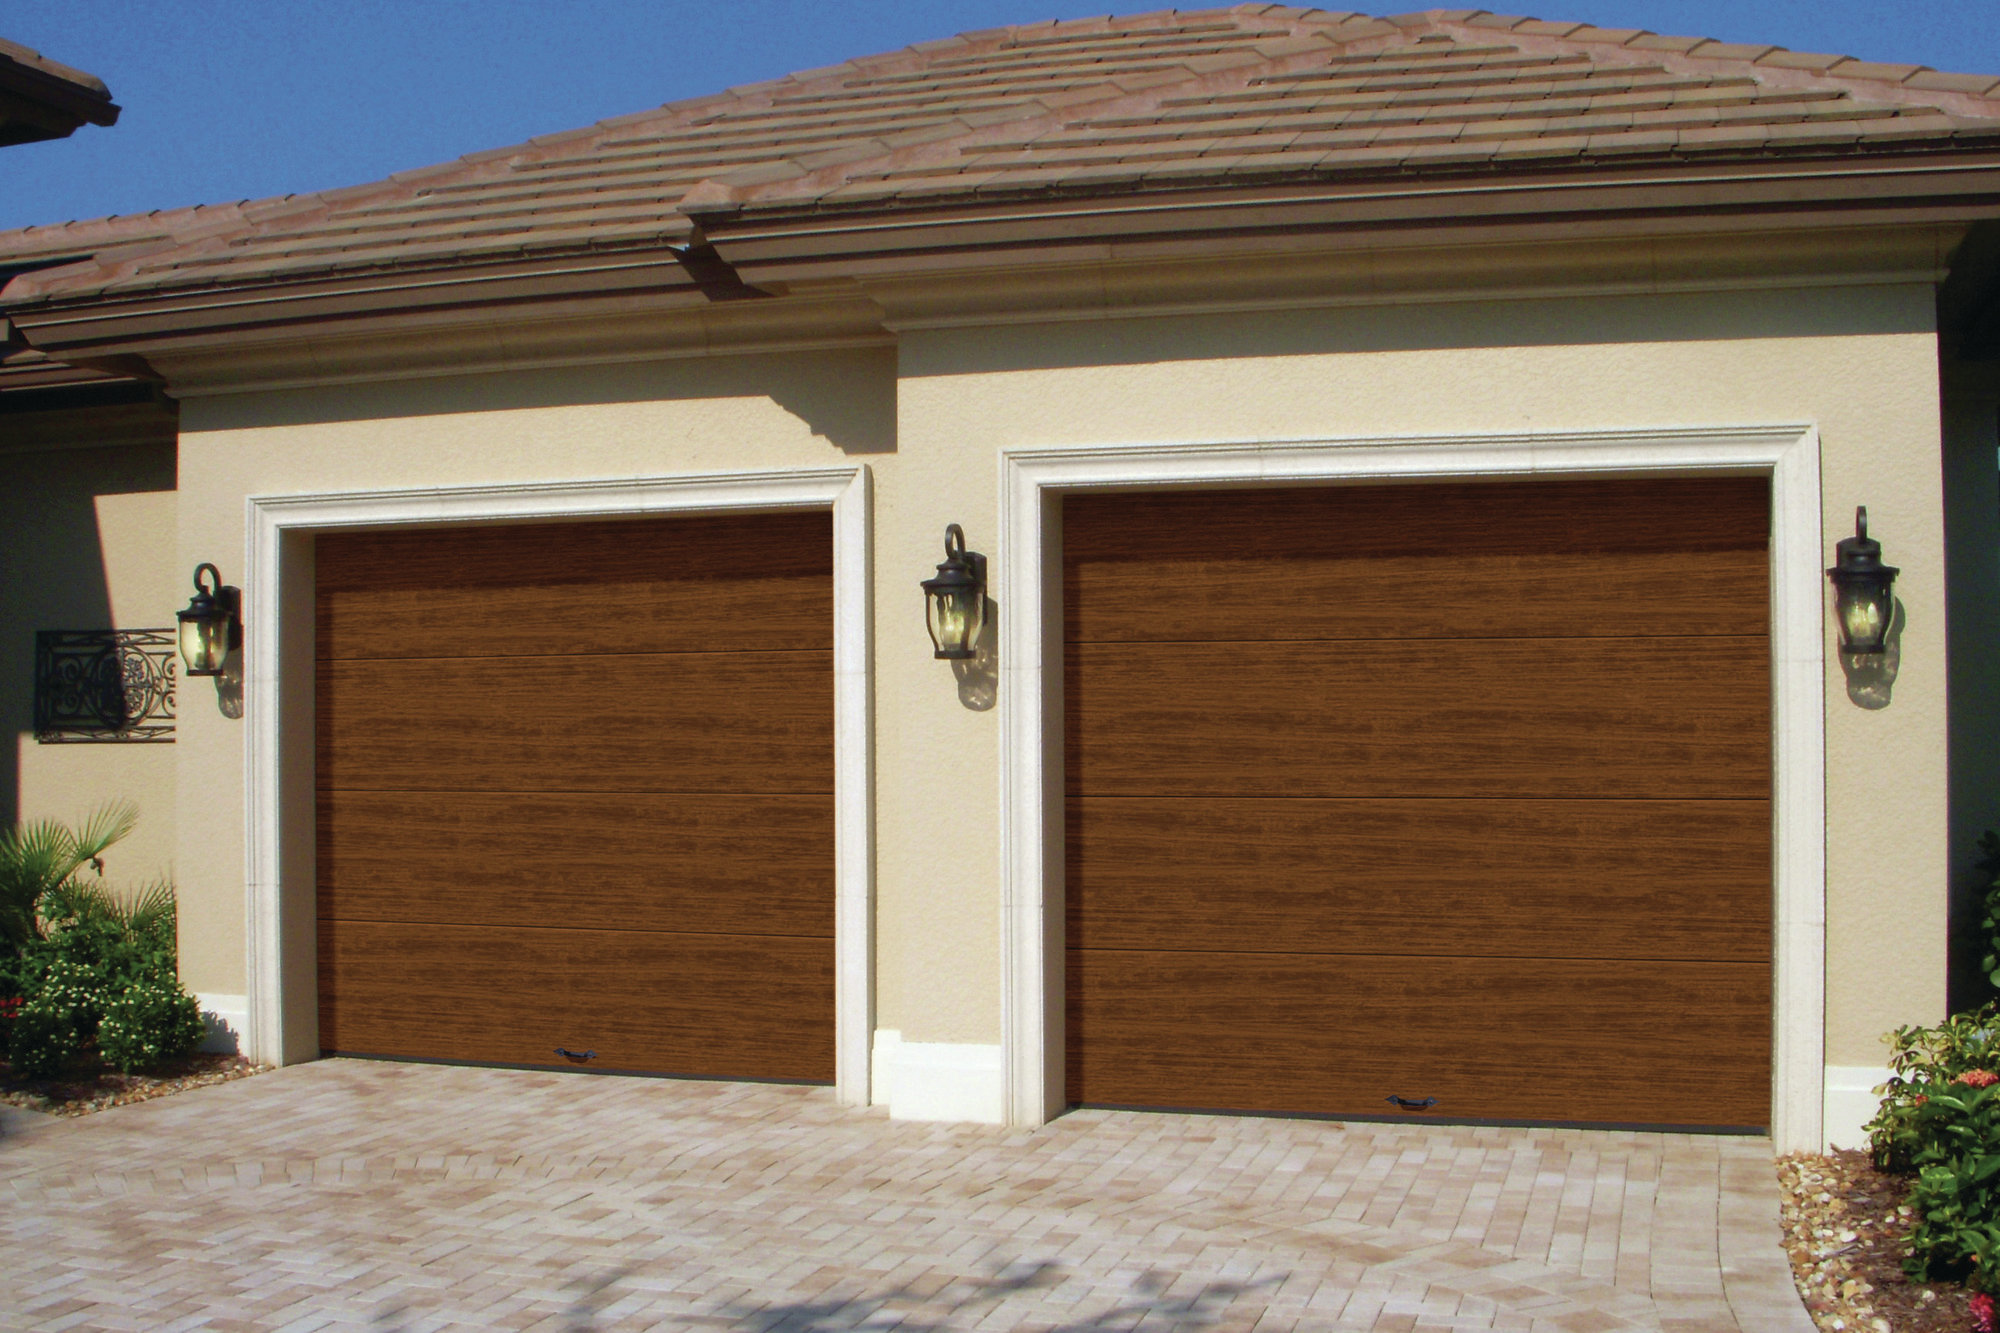 New finish for cypress collection garage doors for Garage door finishes